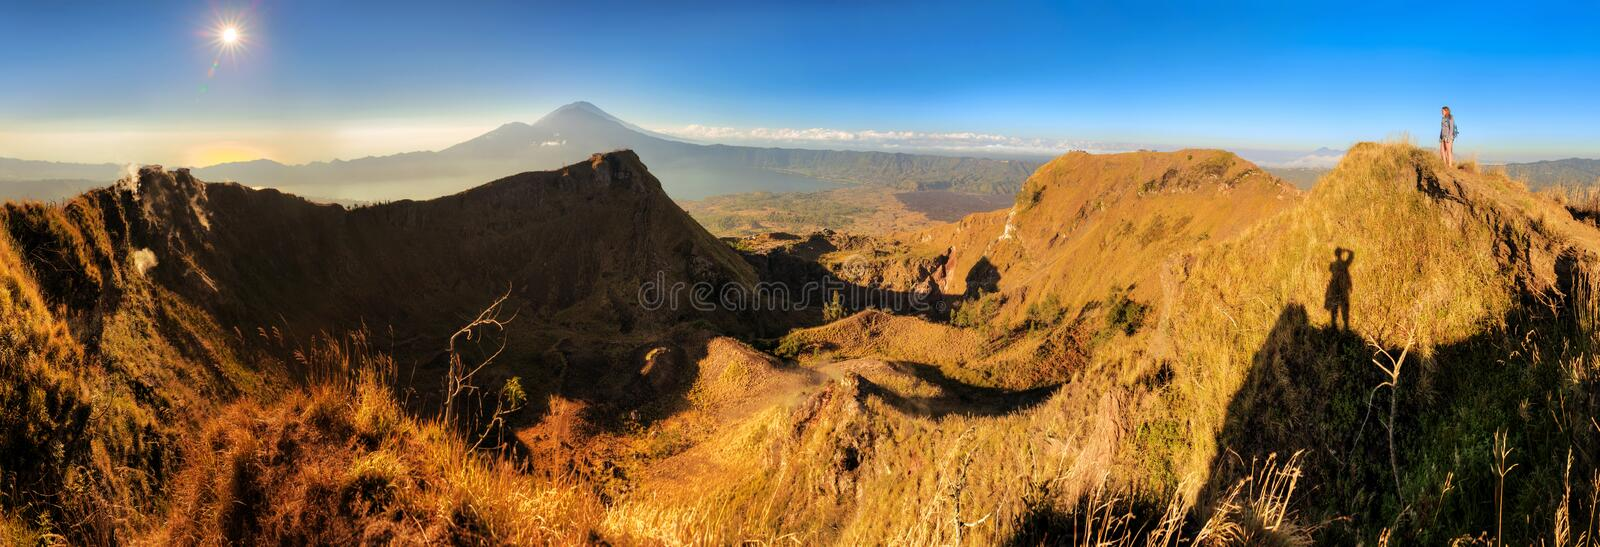 Mount Batur sunrise panorama stock photo